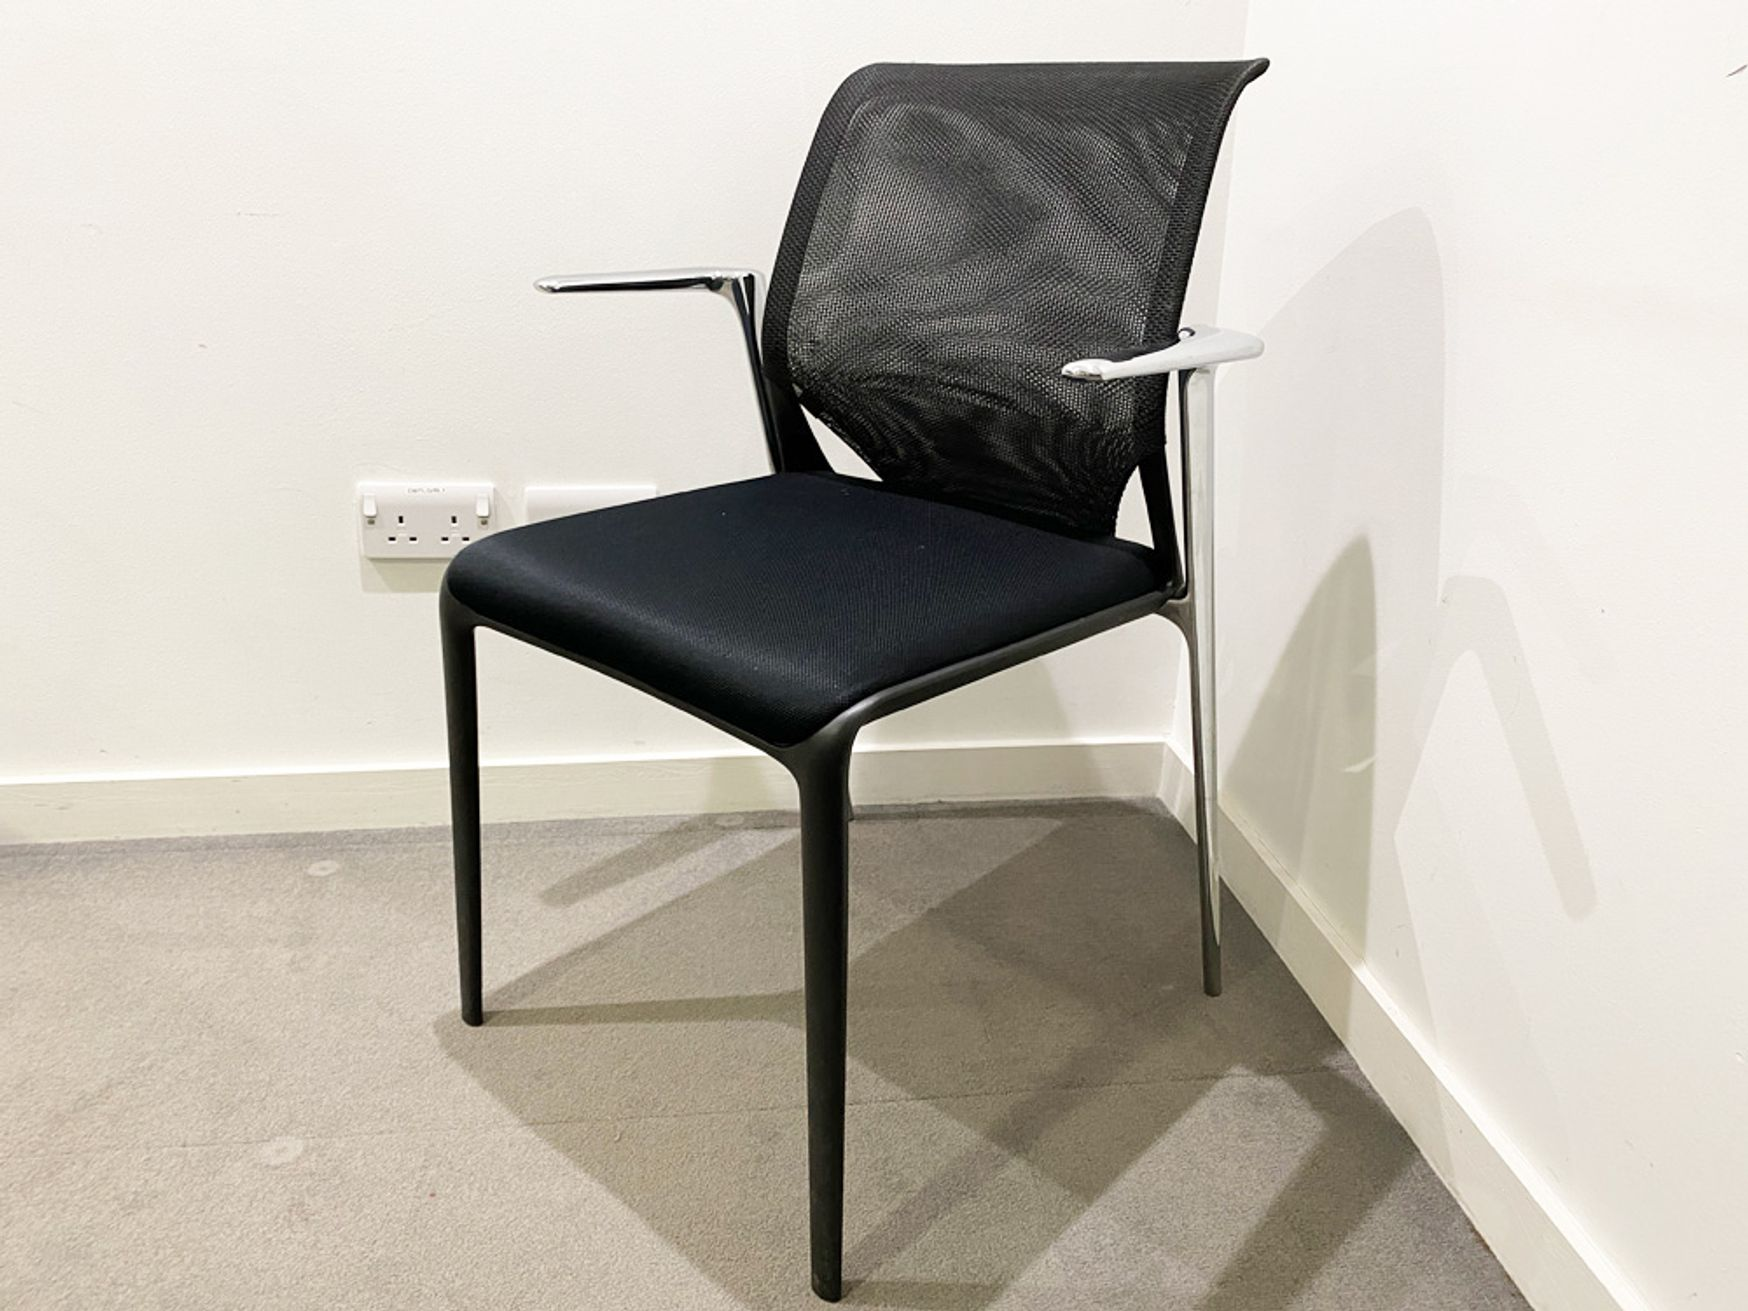 Stunning used Vitra 'Medaslim' chairs with chrome arms, mesh back and upholstered seat